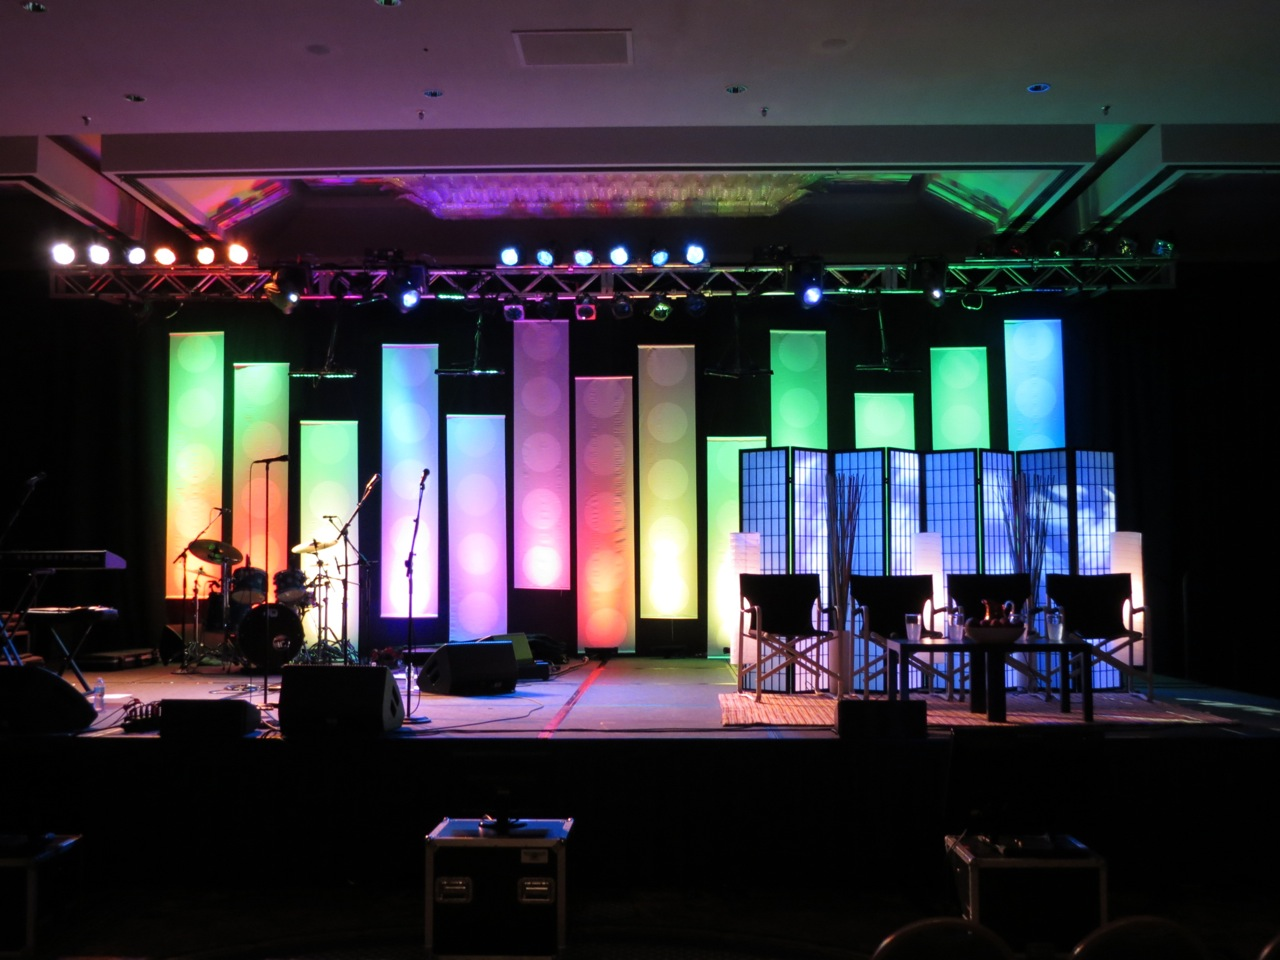 dot banners church stage design ideas - Small Church Stage Design Ideas